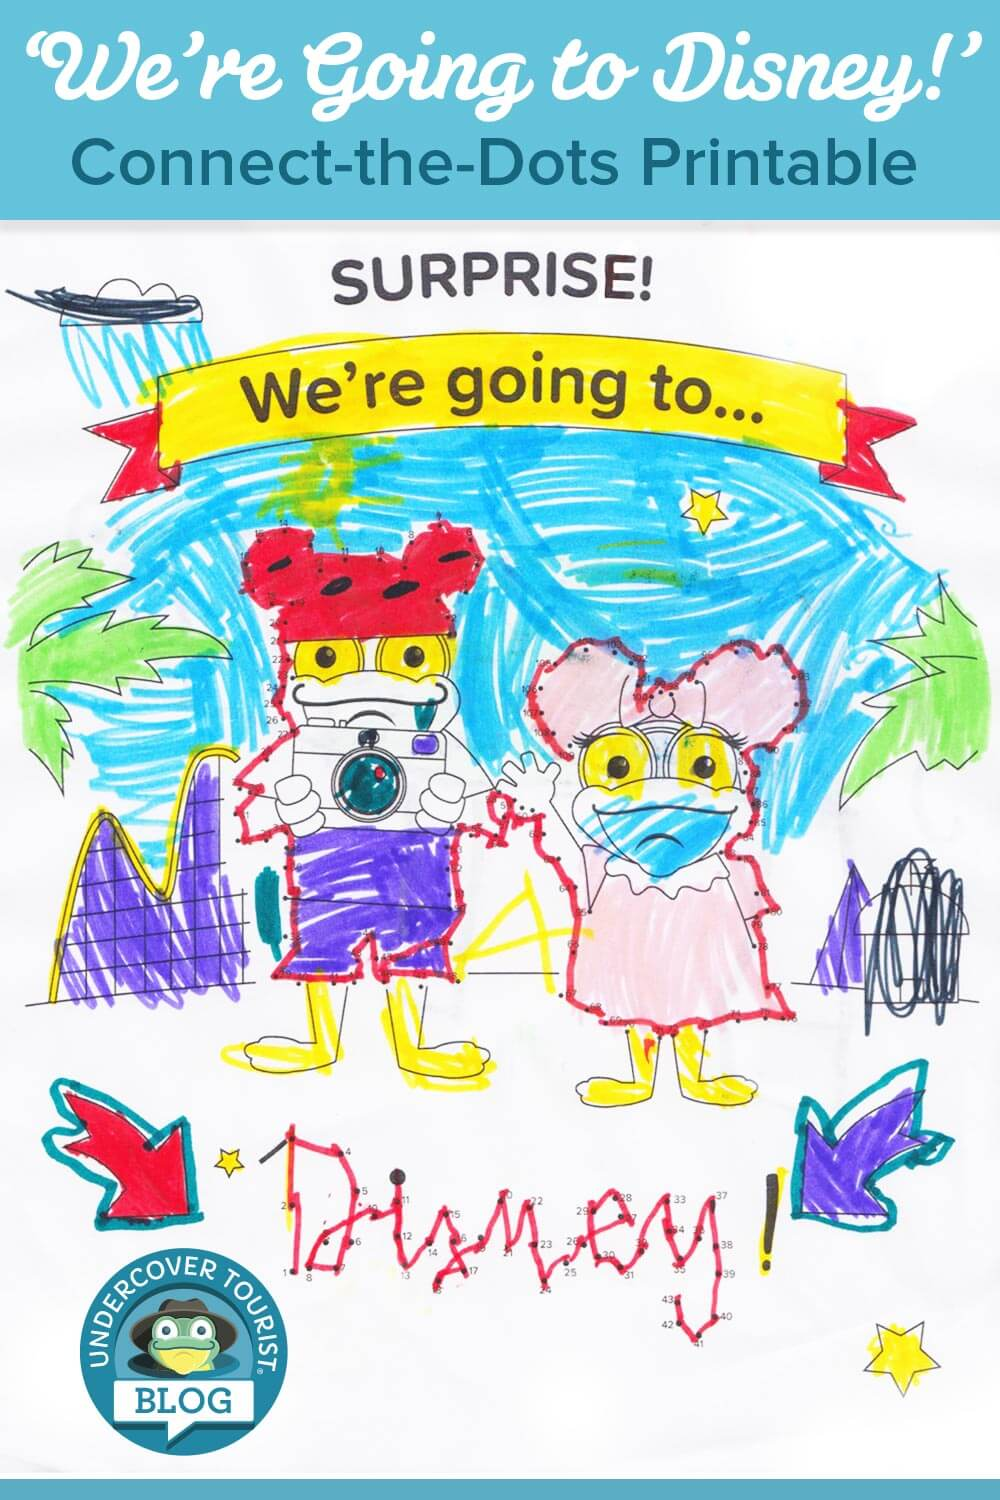 Surprise! We're Going to Disney - We're Going to Disney Connect-the-Dots Printable